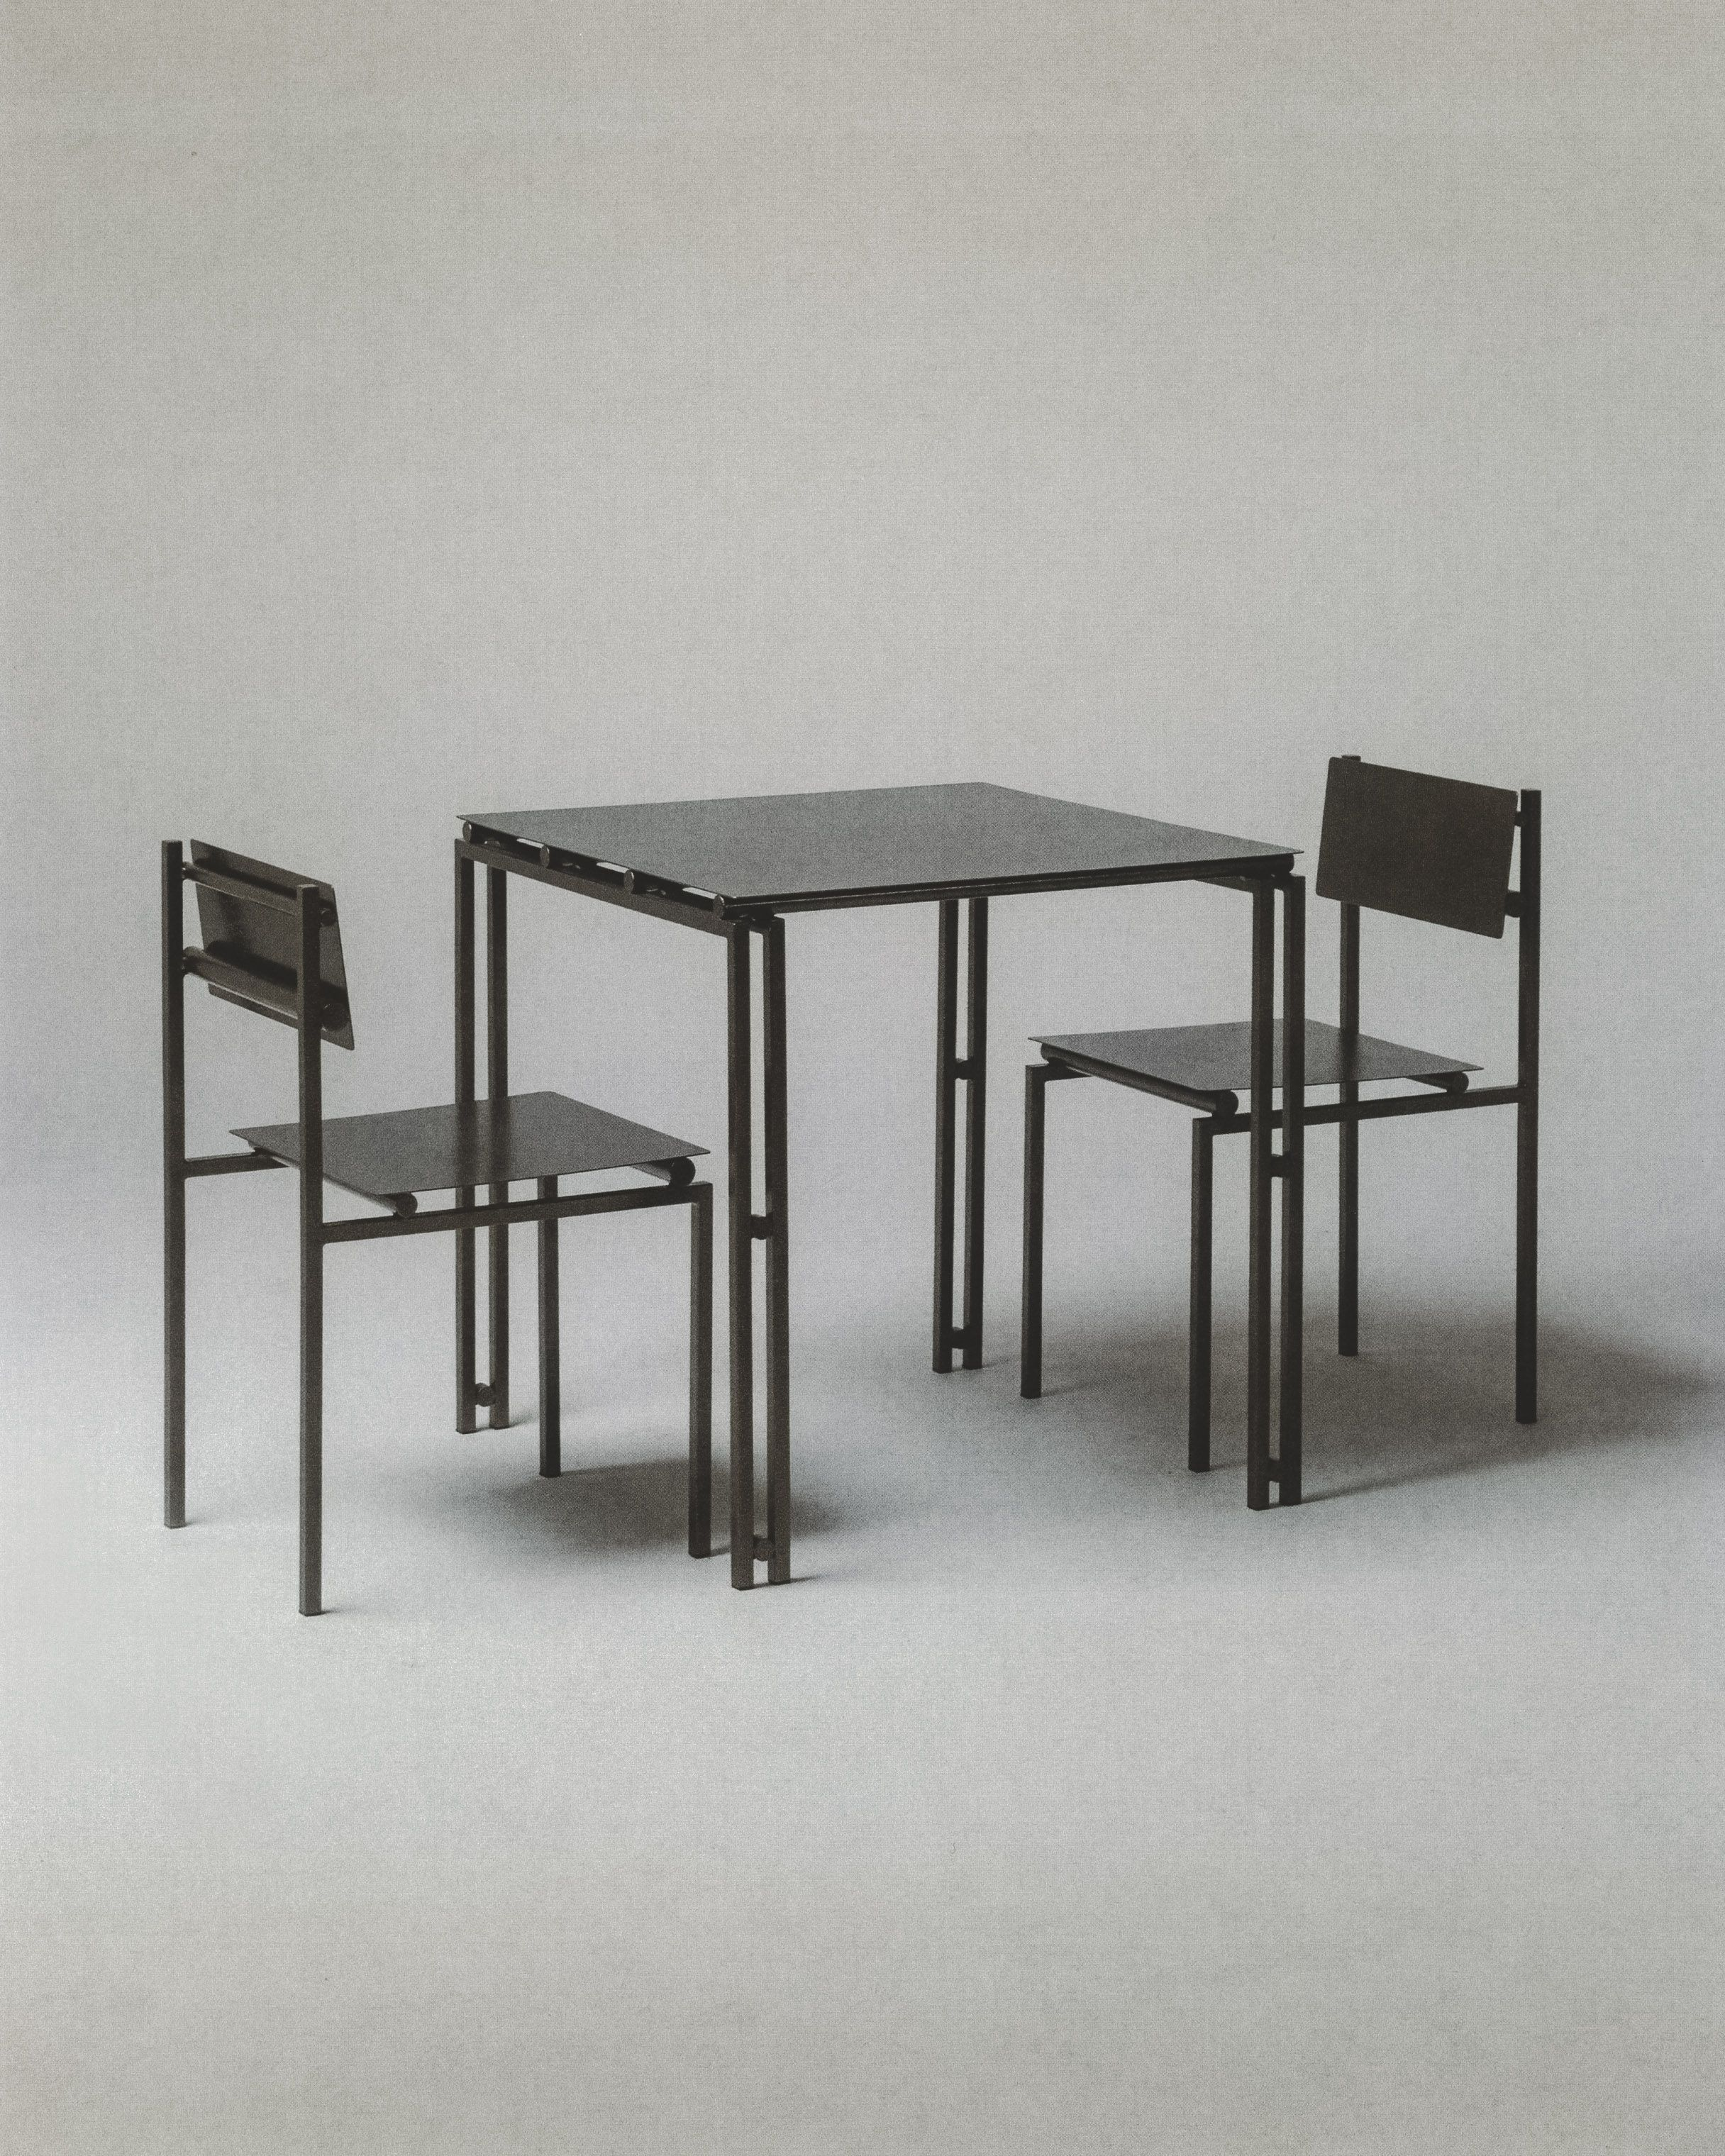 Suspension Metal Dining product image 6